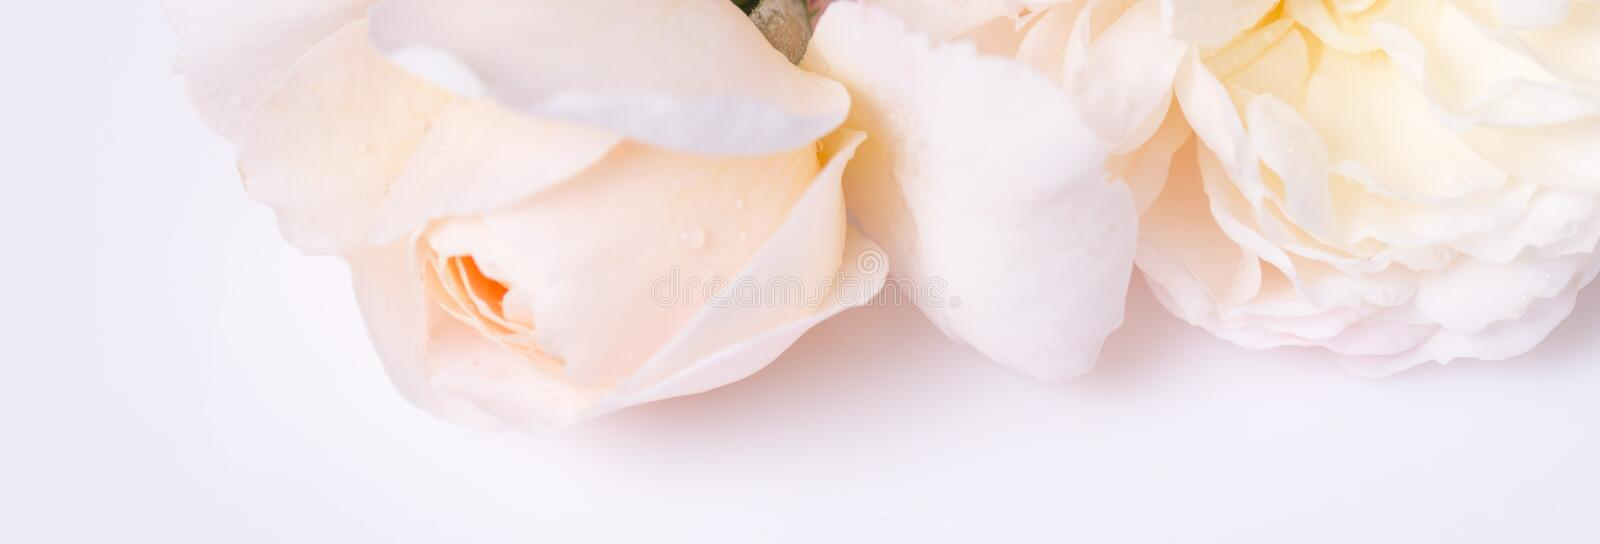 Romantic banner, delicate white roses flowers close-up. Fragrant crem pink petals royalty free stock photos